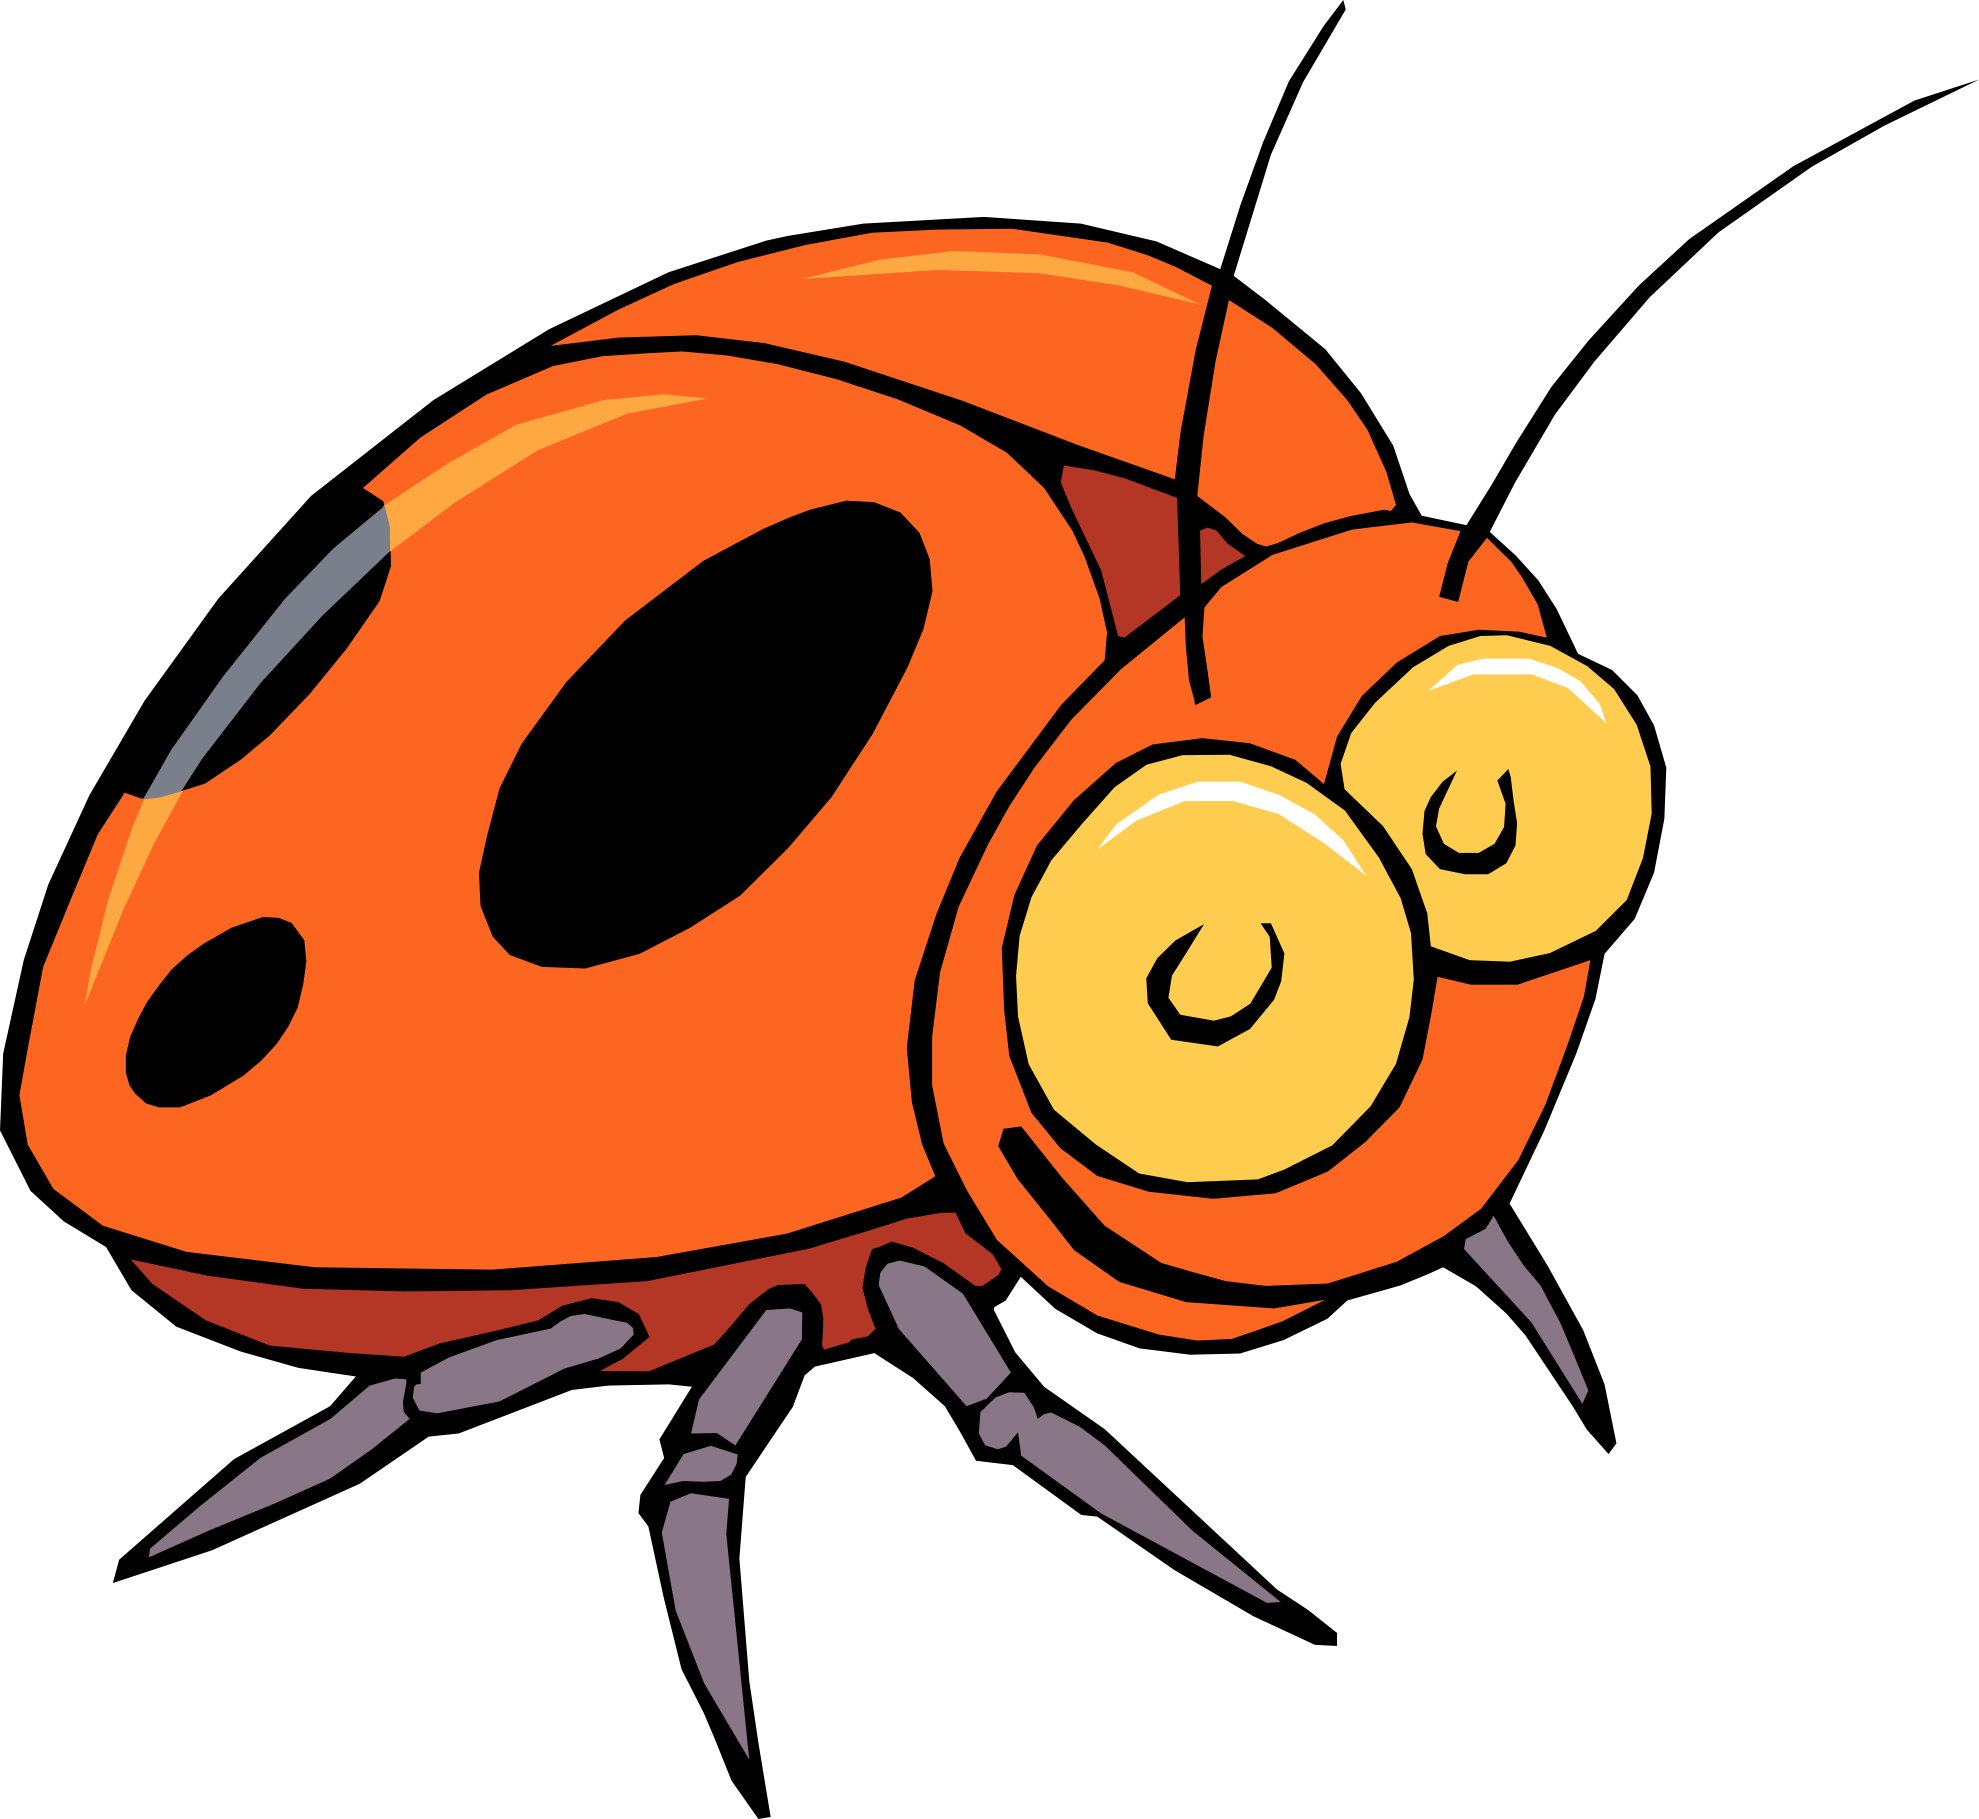 Bug clipart #4, Download drawings